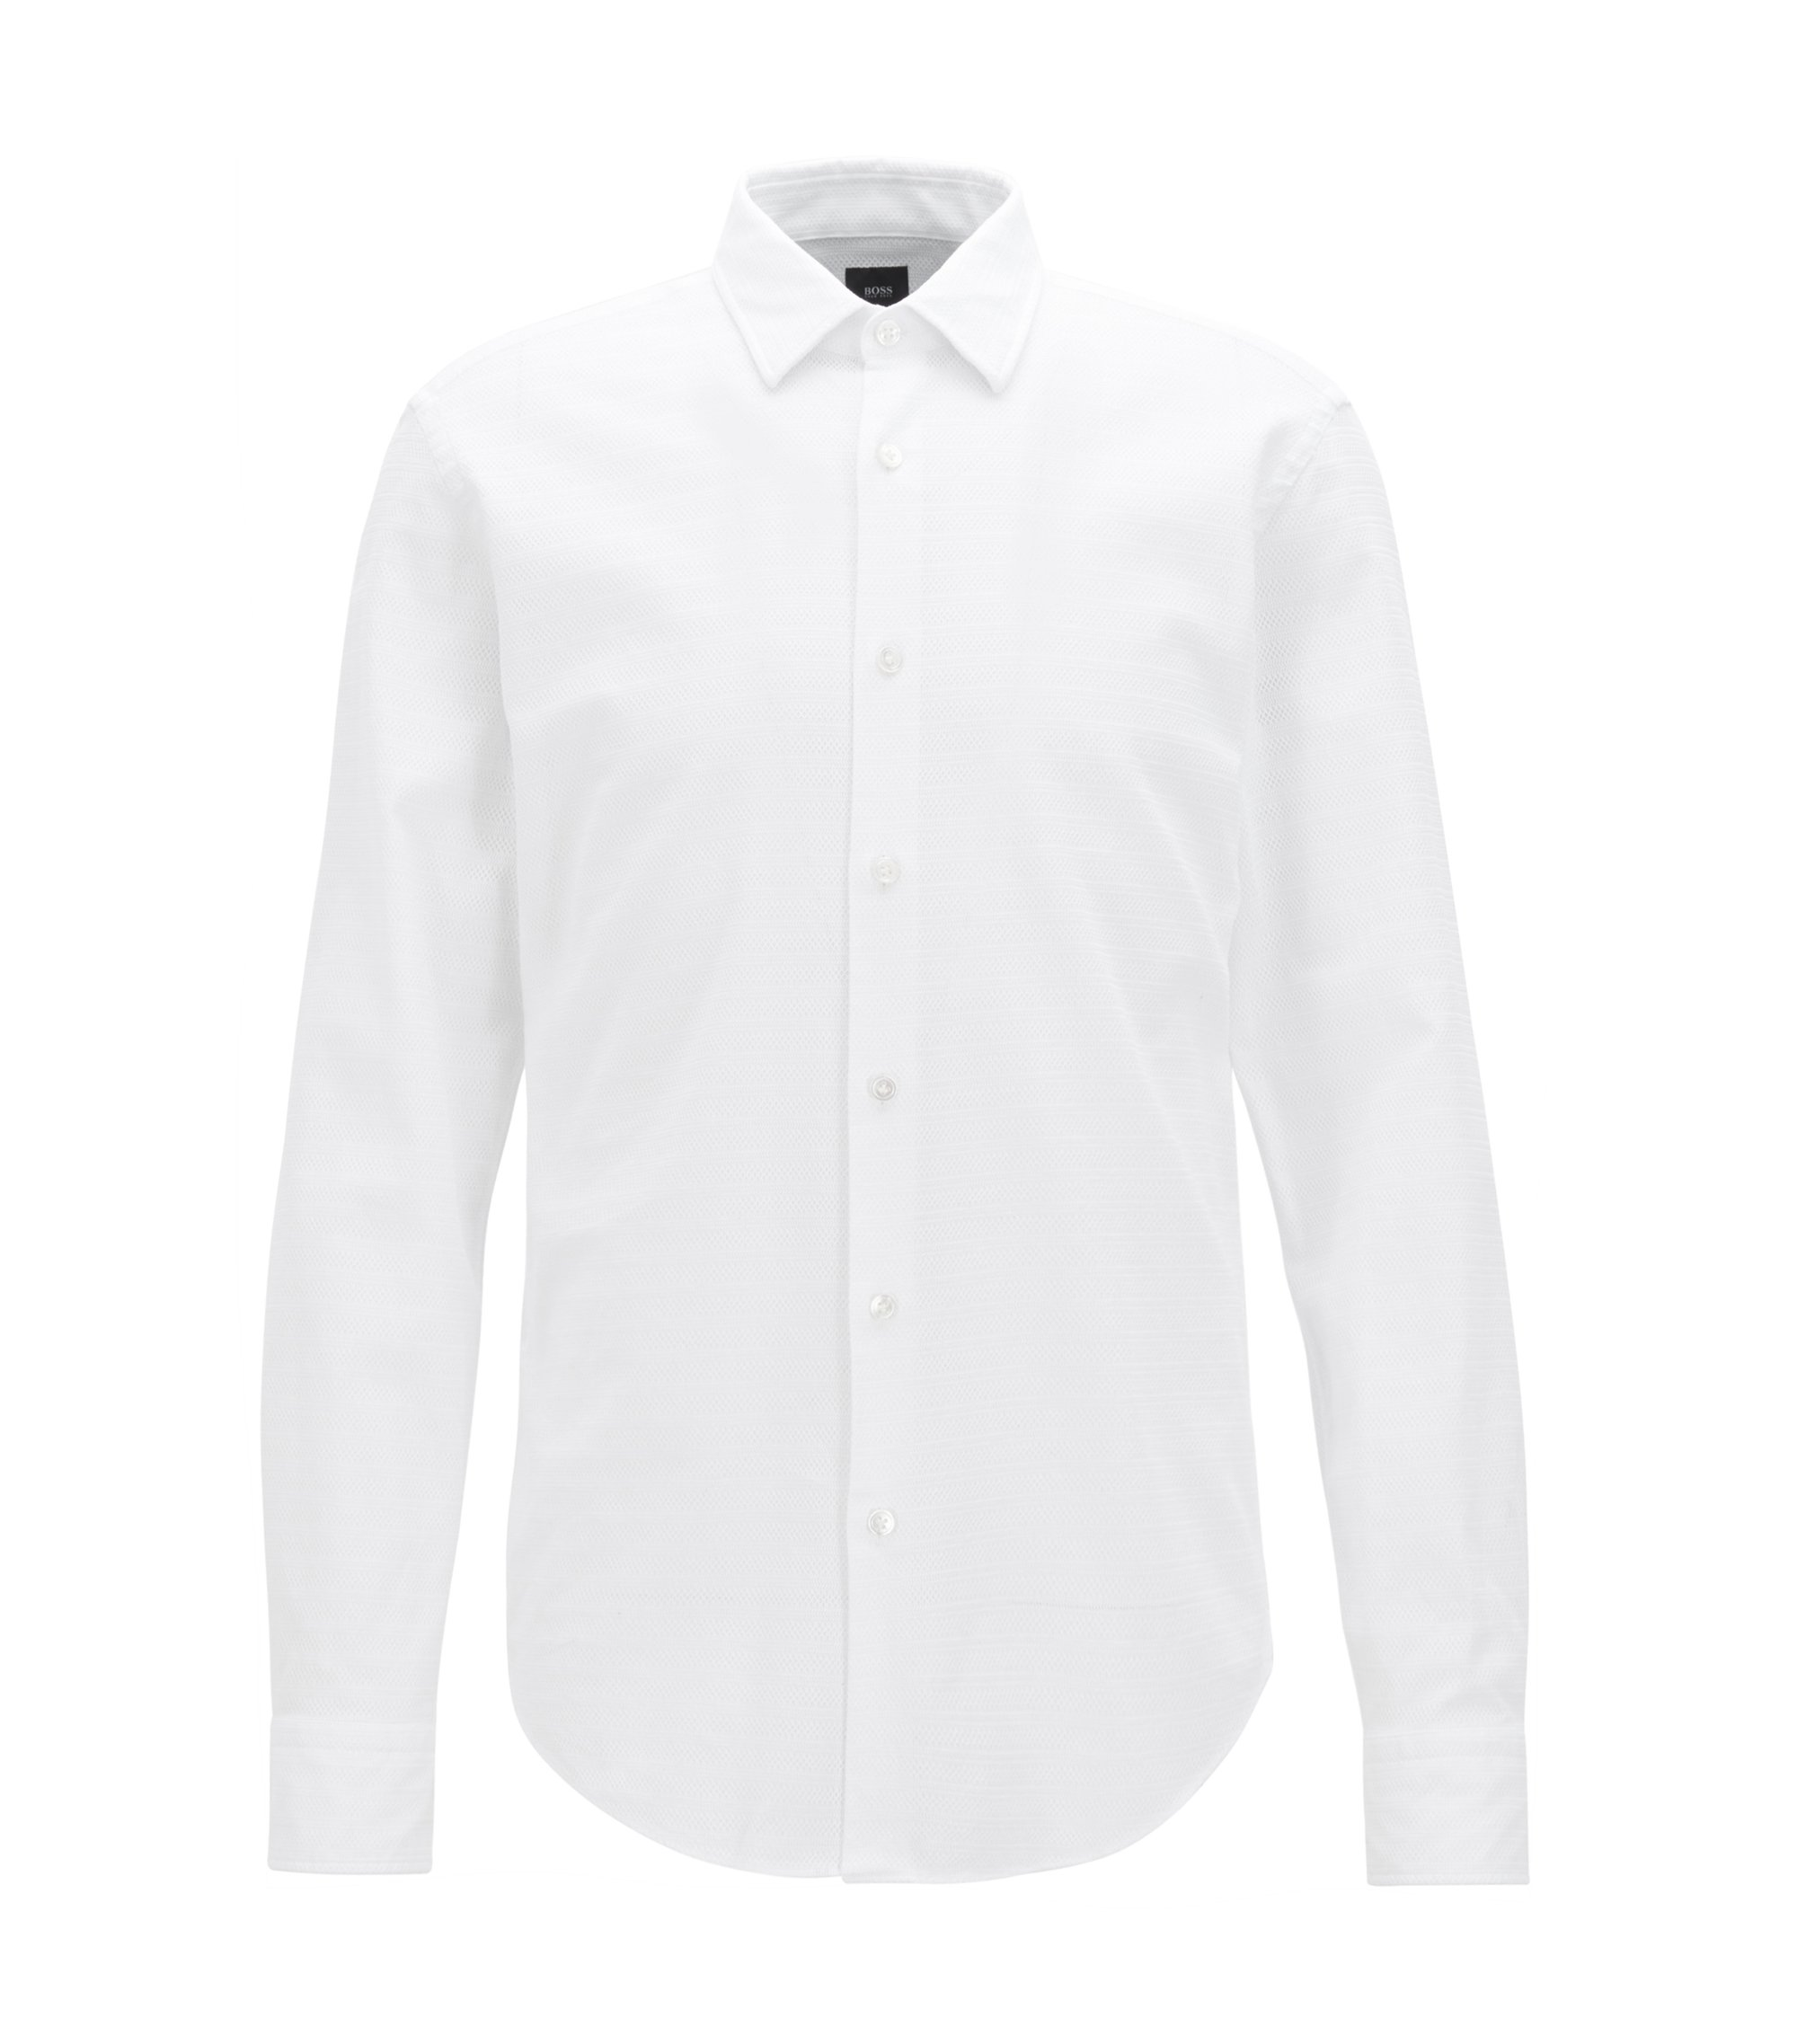 Striped Cotton Sport Shirt, Slim Fit | T-Riccardo F, White